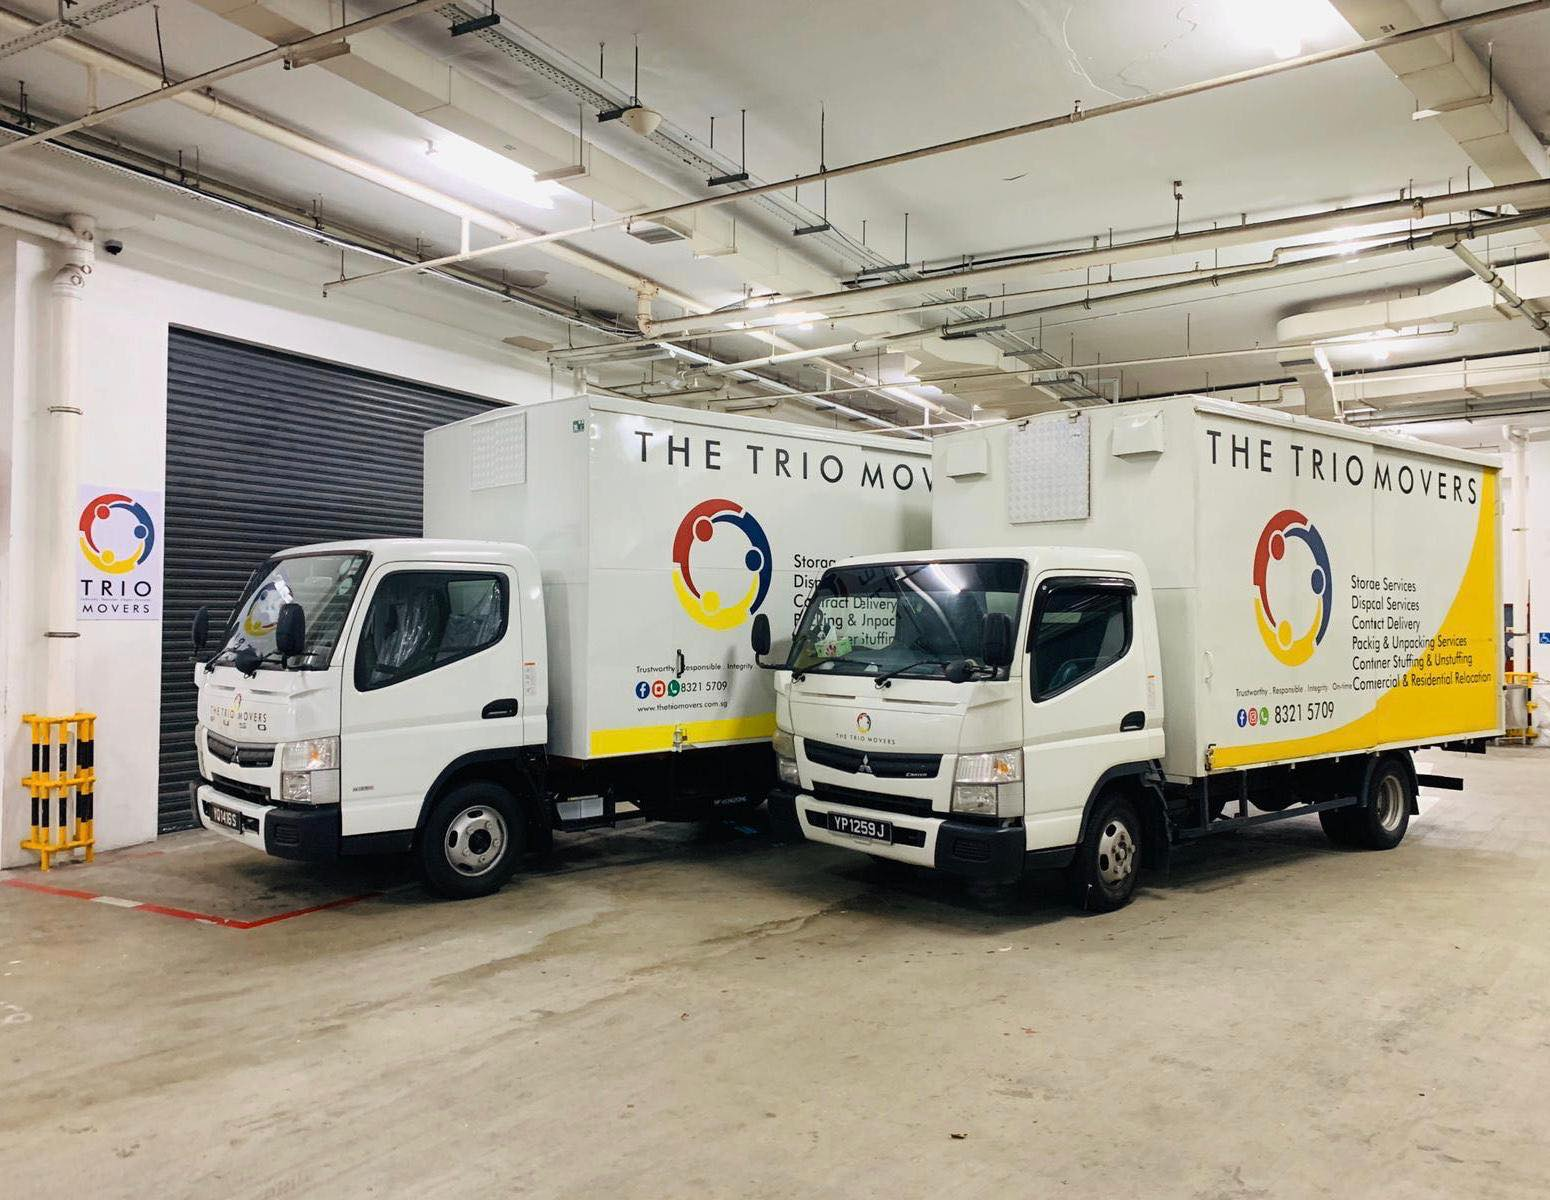 The Trio Movers